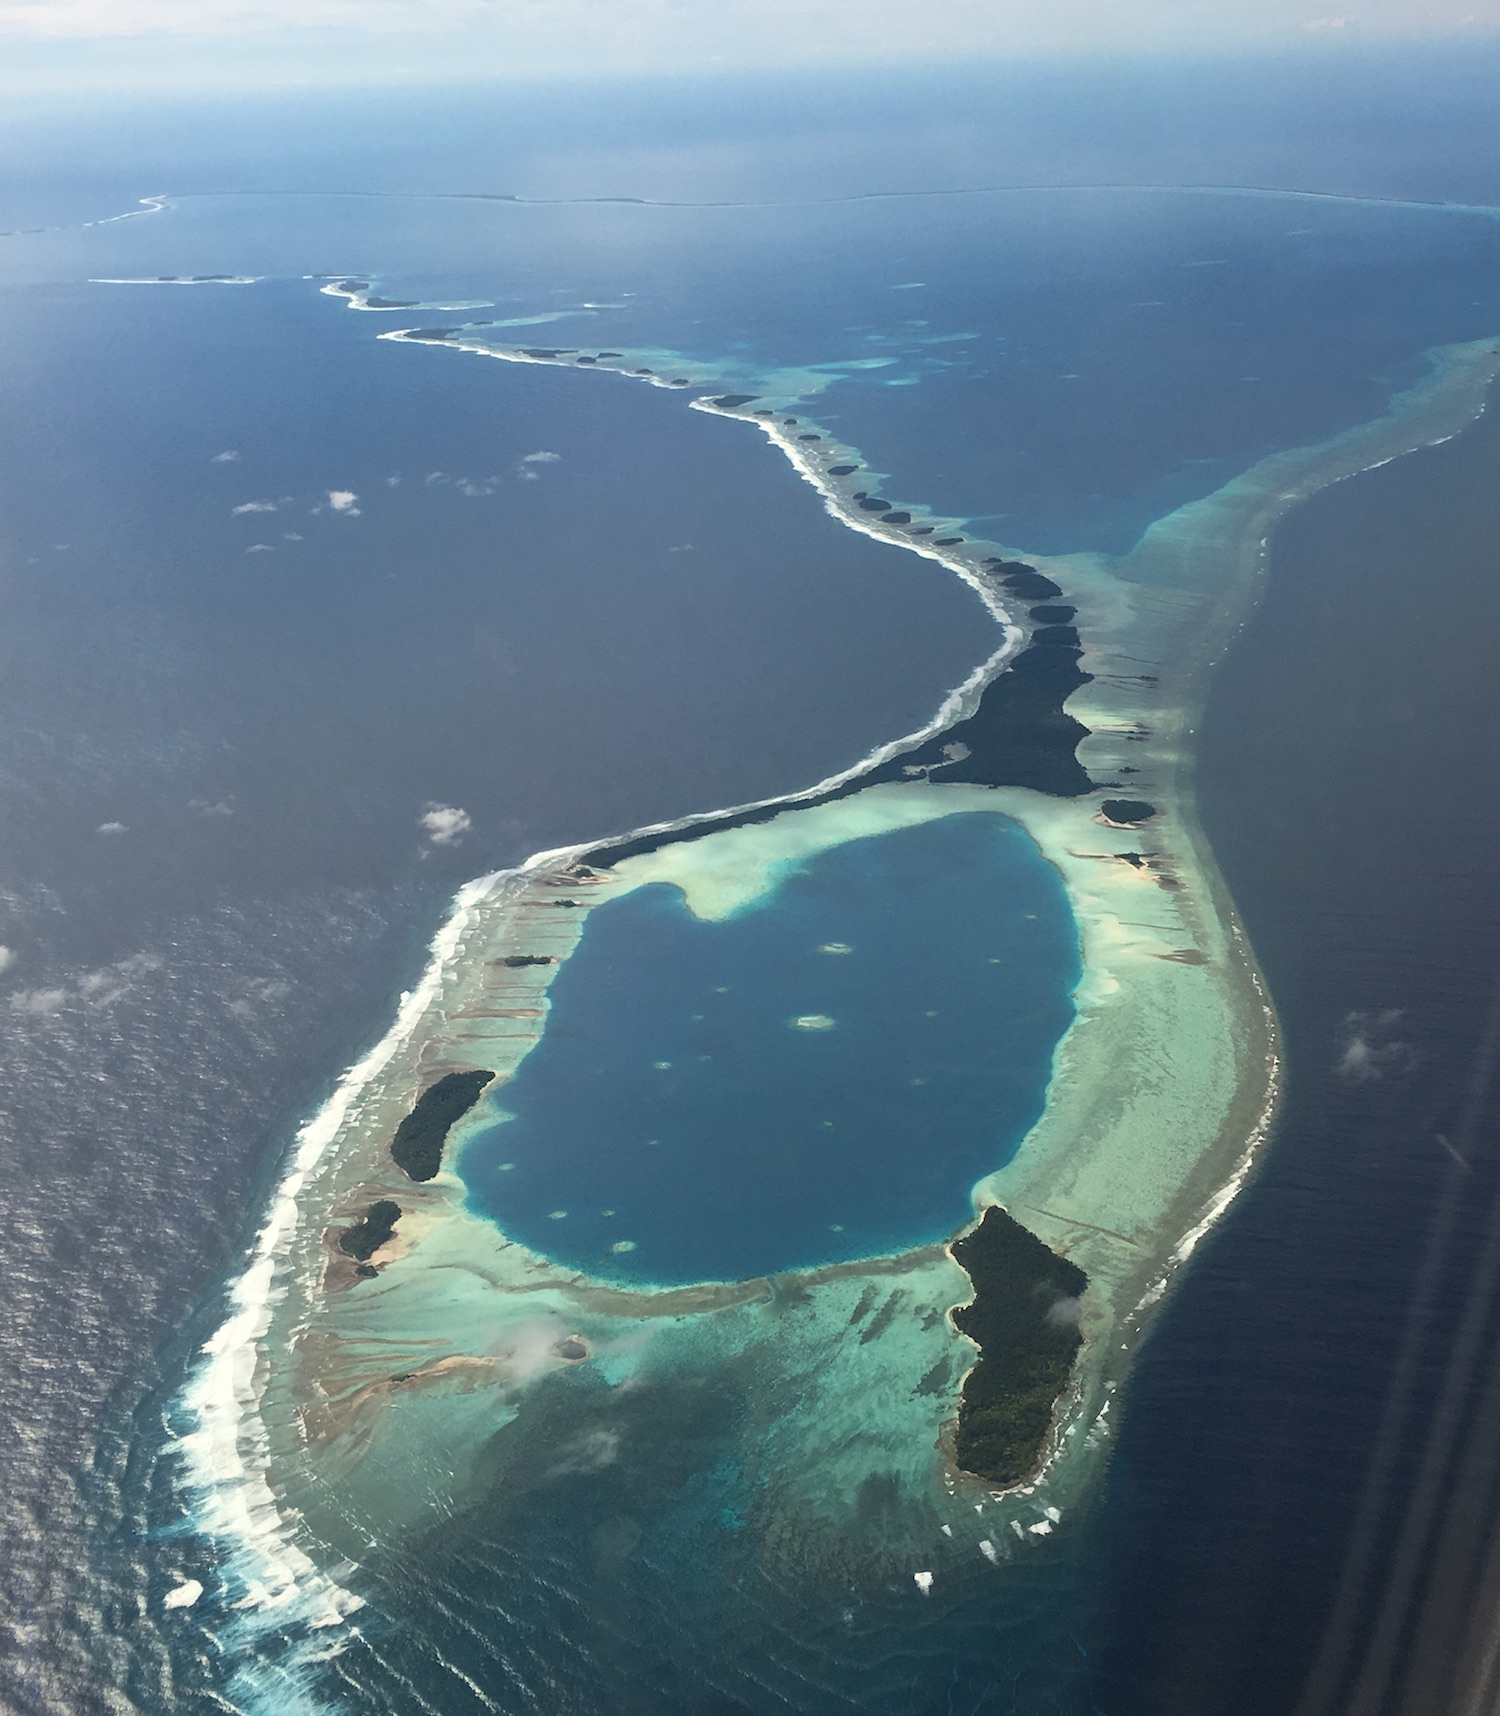 Dazzling Arno Atoll in figure of 8 from the air